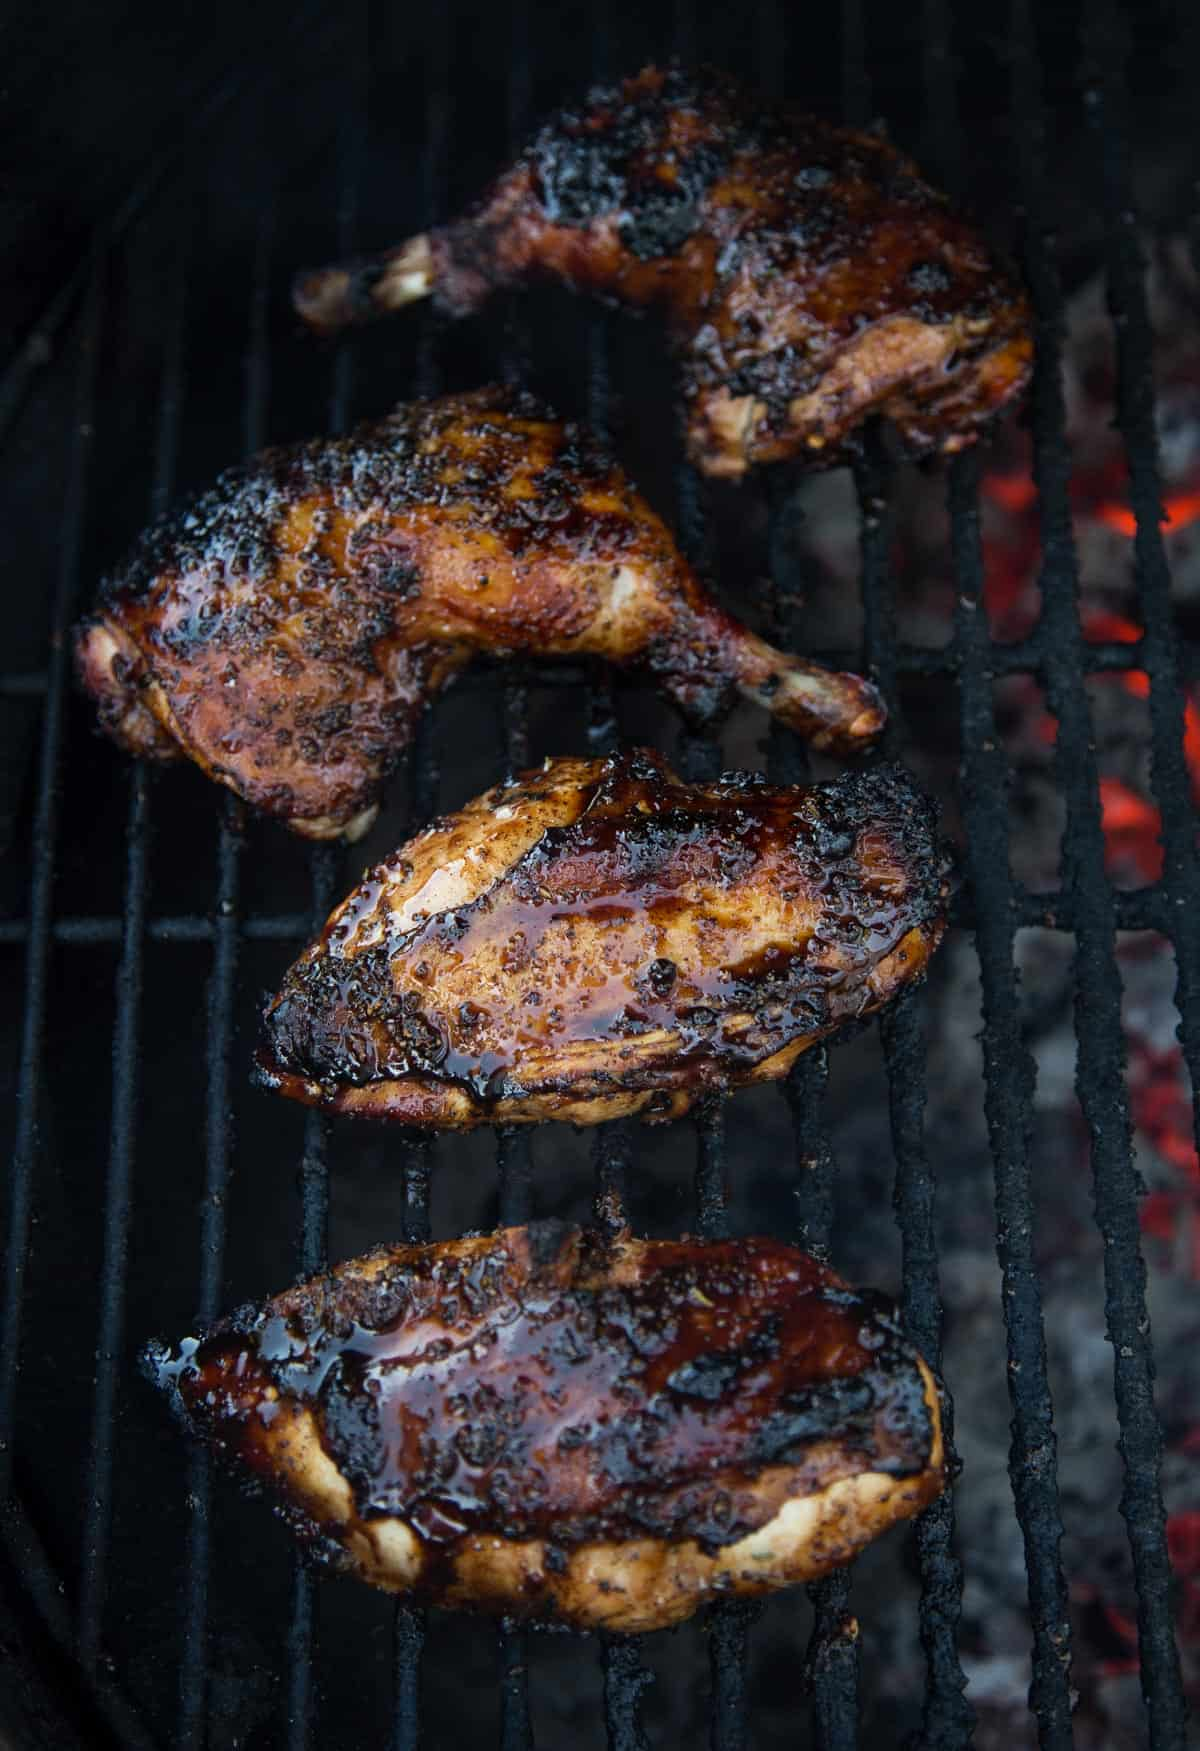 Balsamic Rosemary Grilled Chicken on the grill